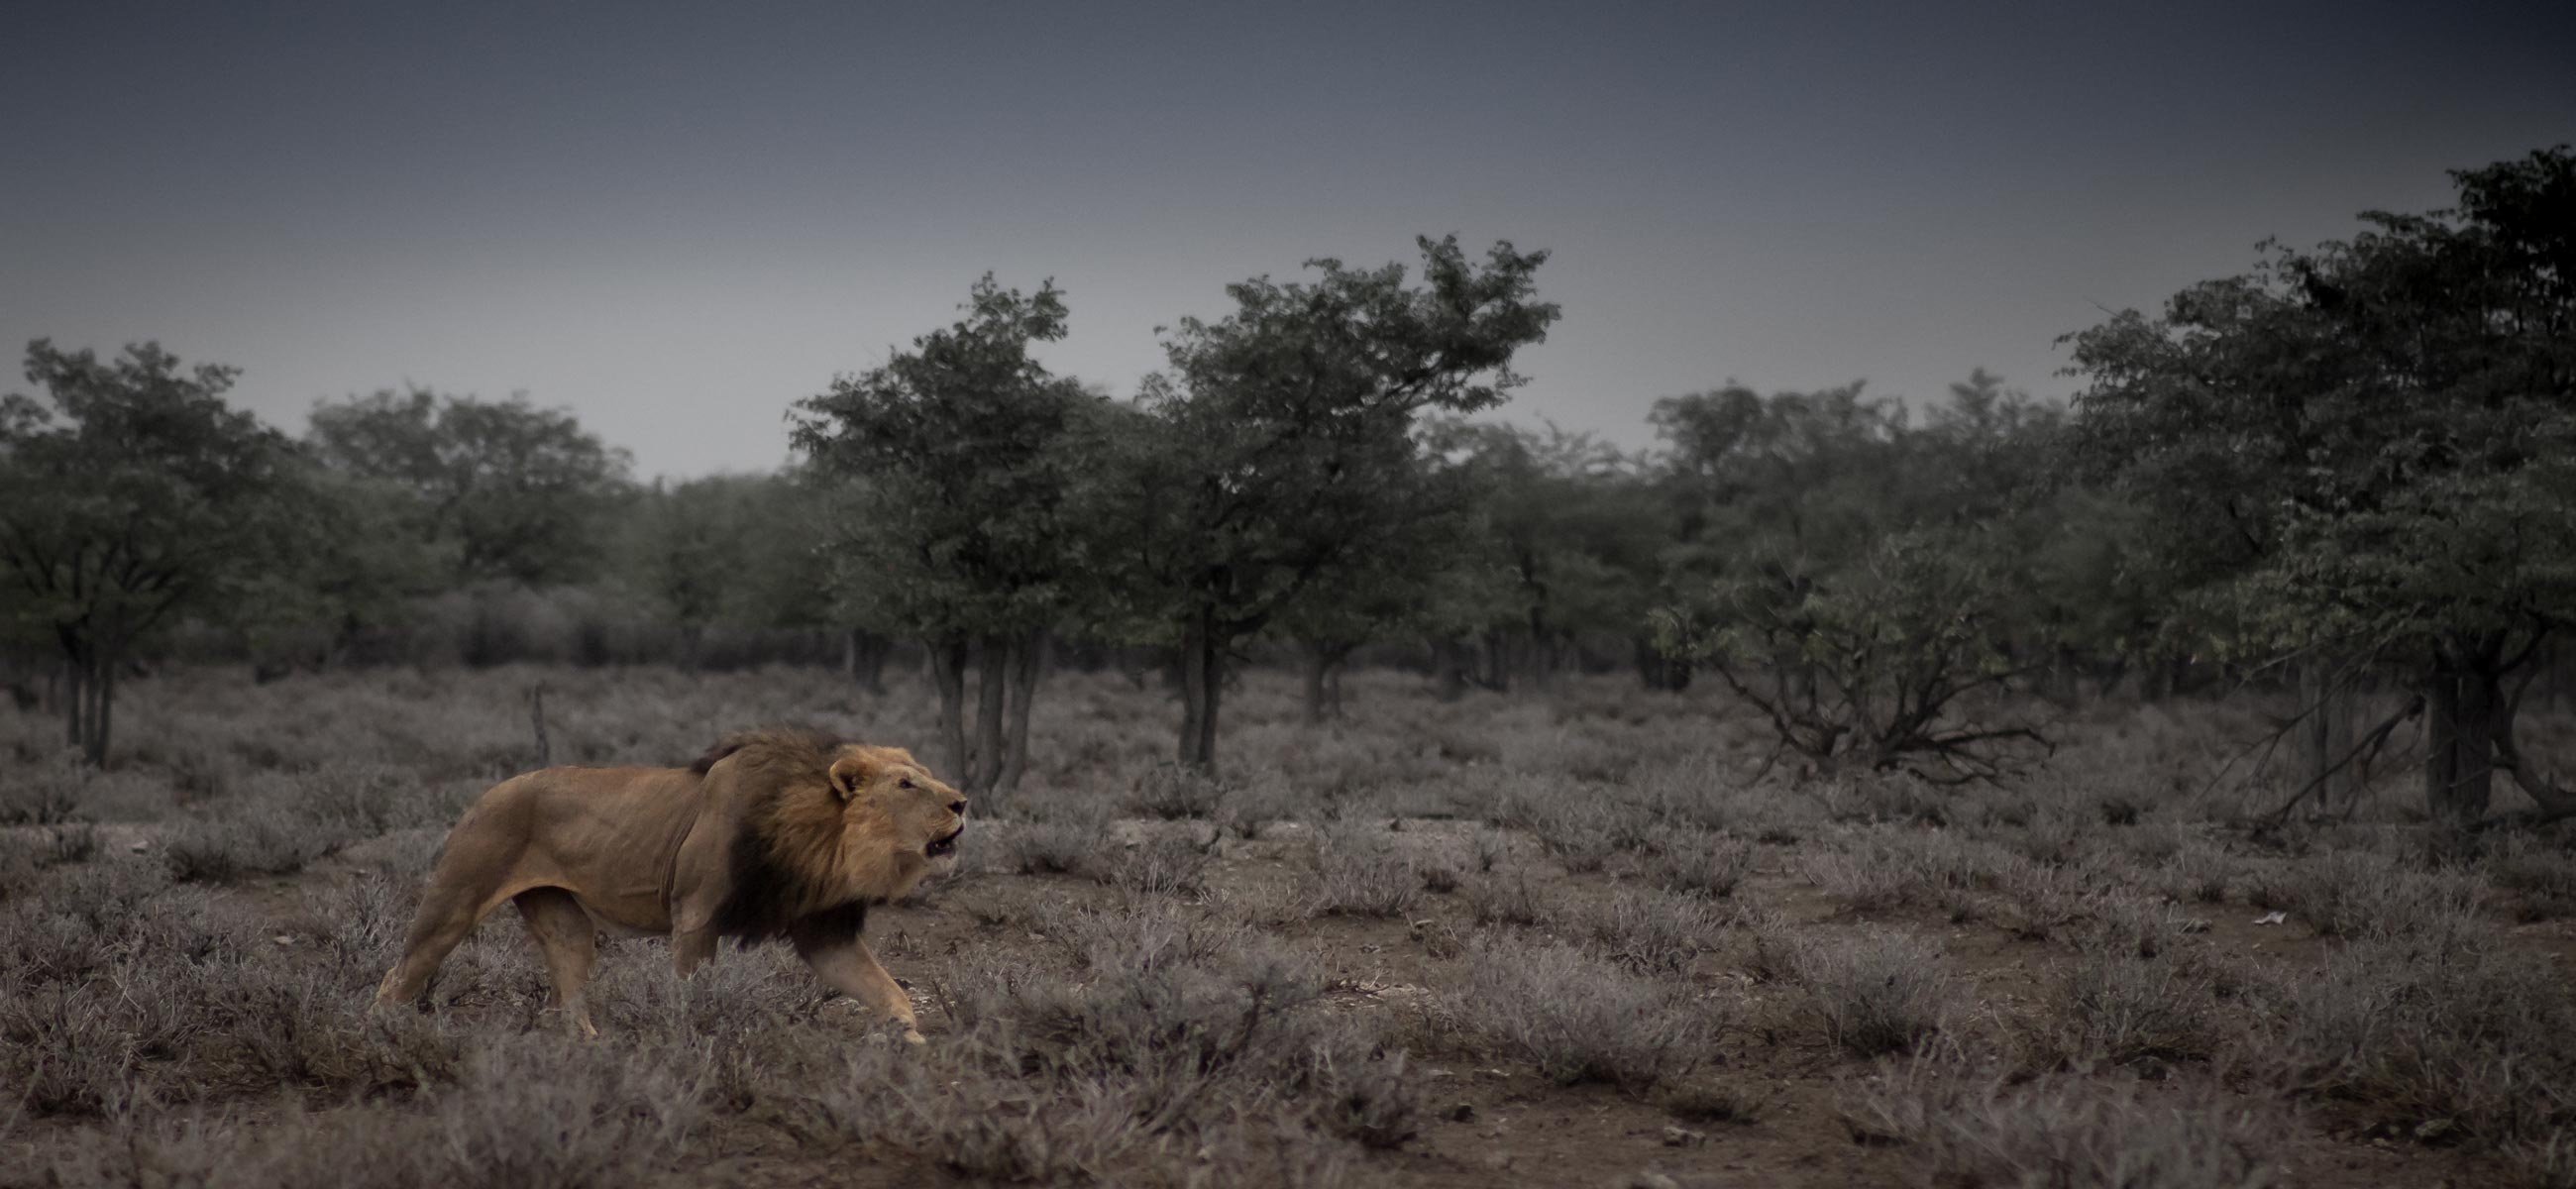 lion roaring in Etosha Namibia early morning during game drive